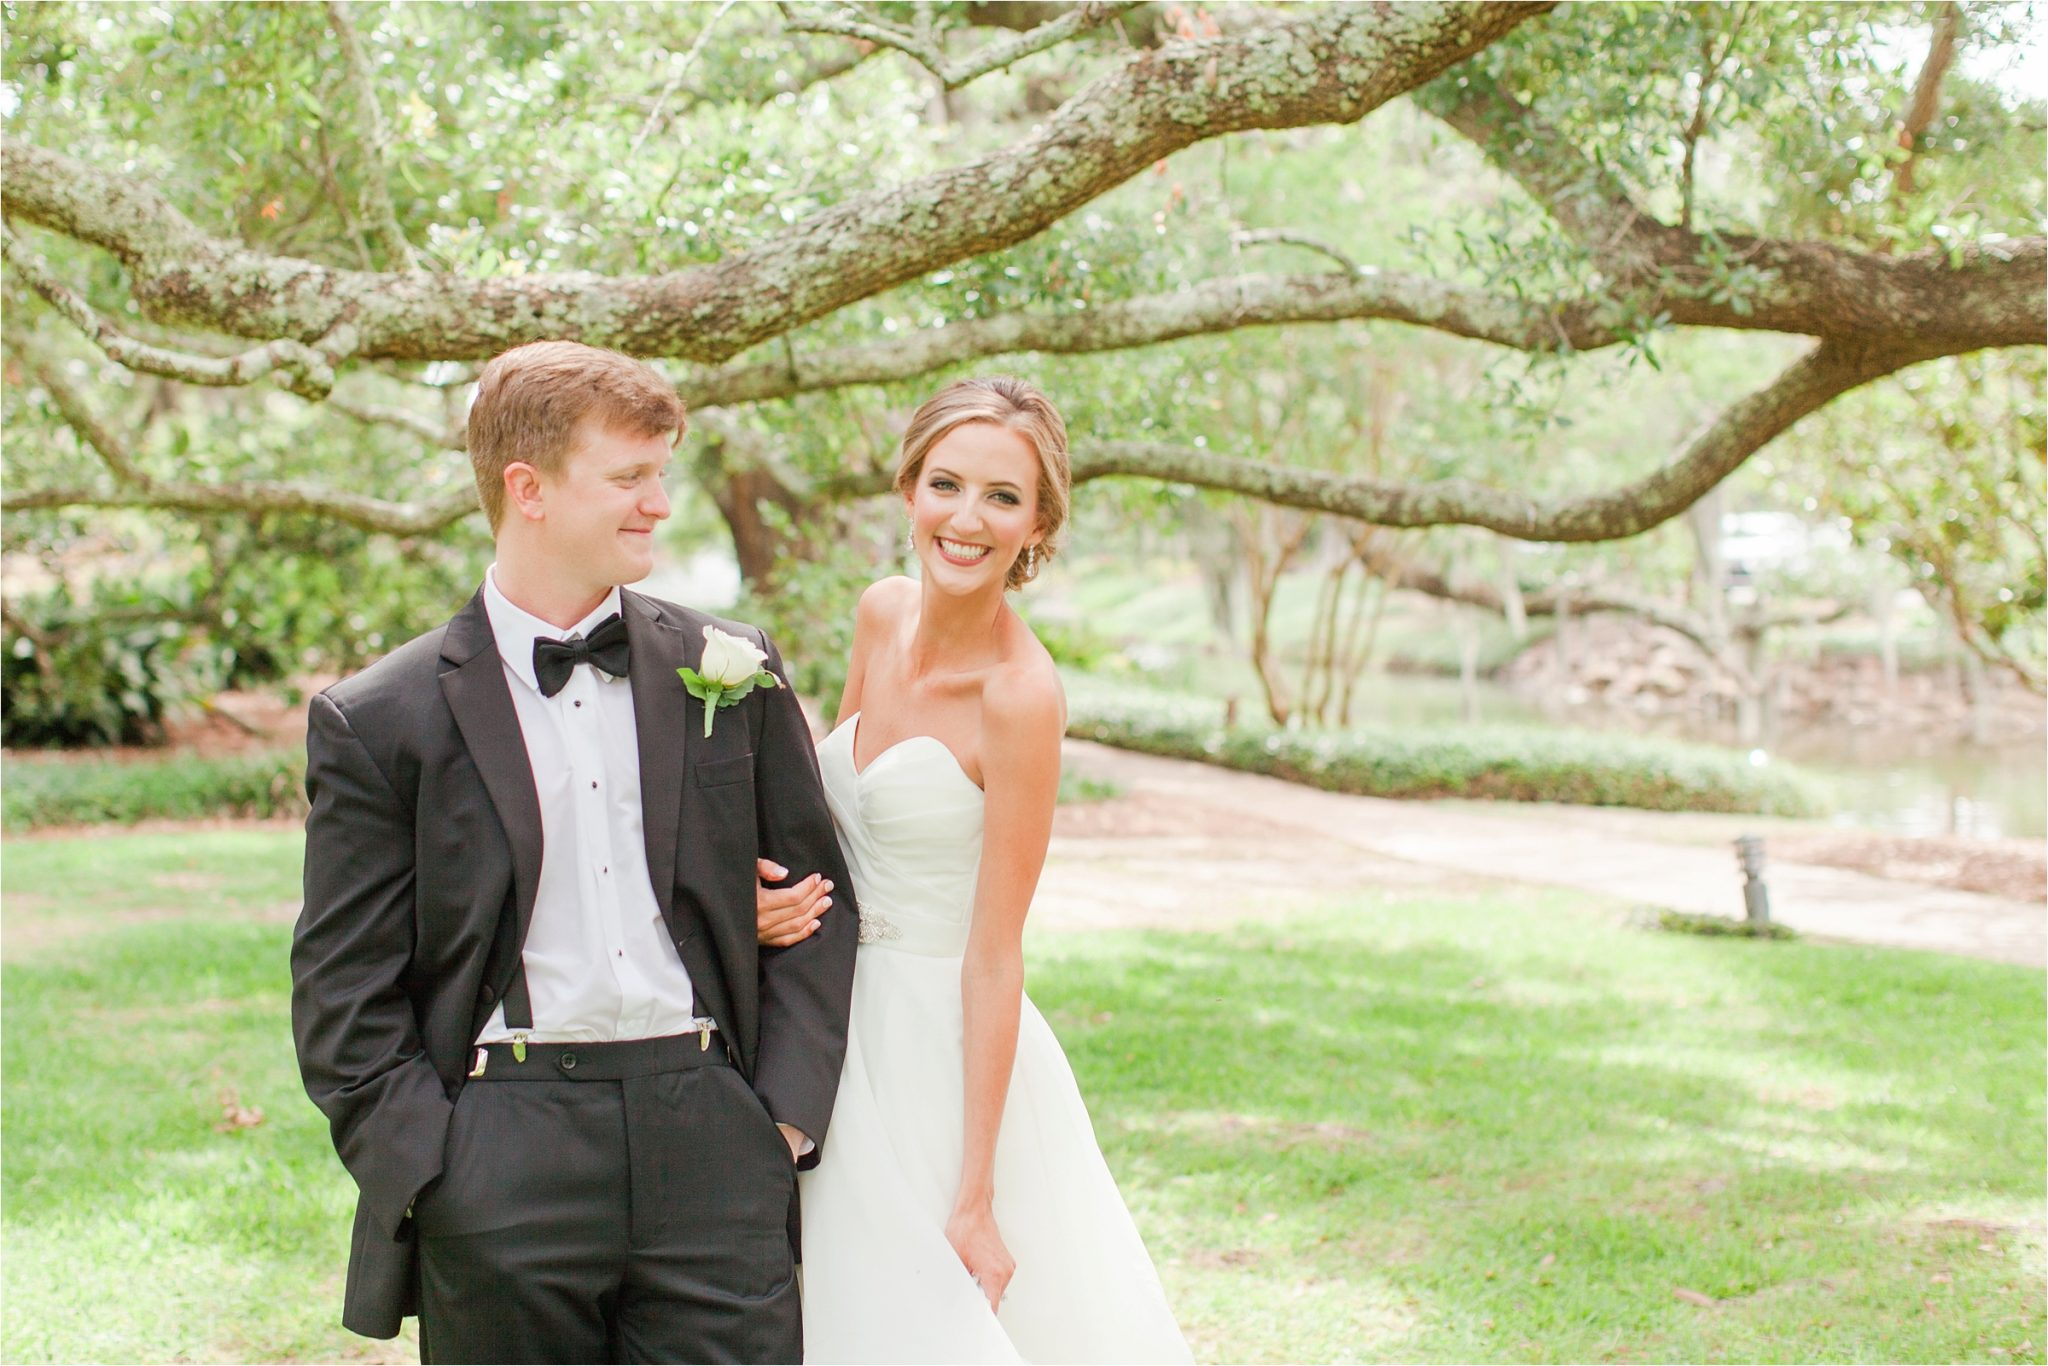 Classy-Light-Blue-wedding-at-the-Fairhope-Inn-MaryFrances-Craig_0075